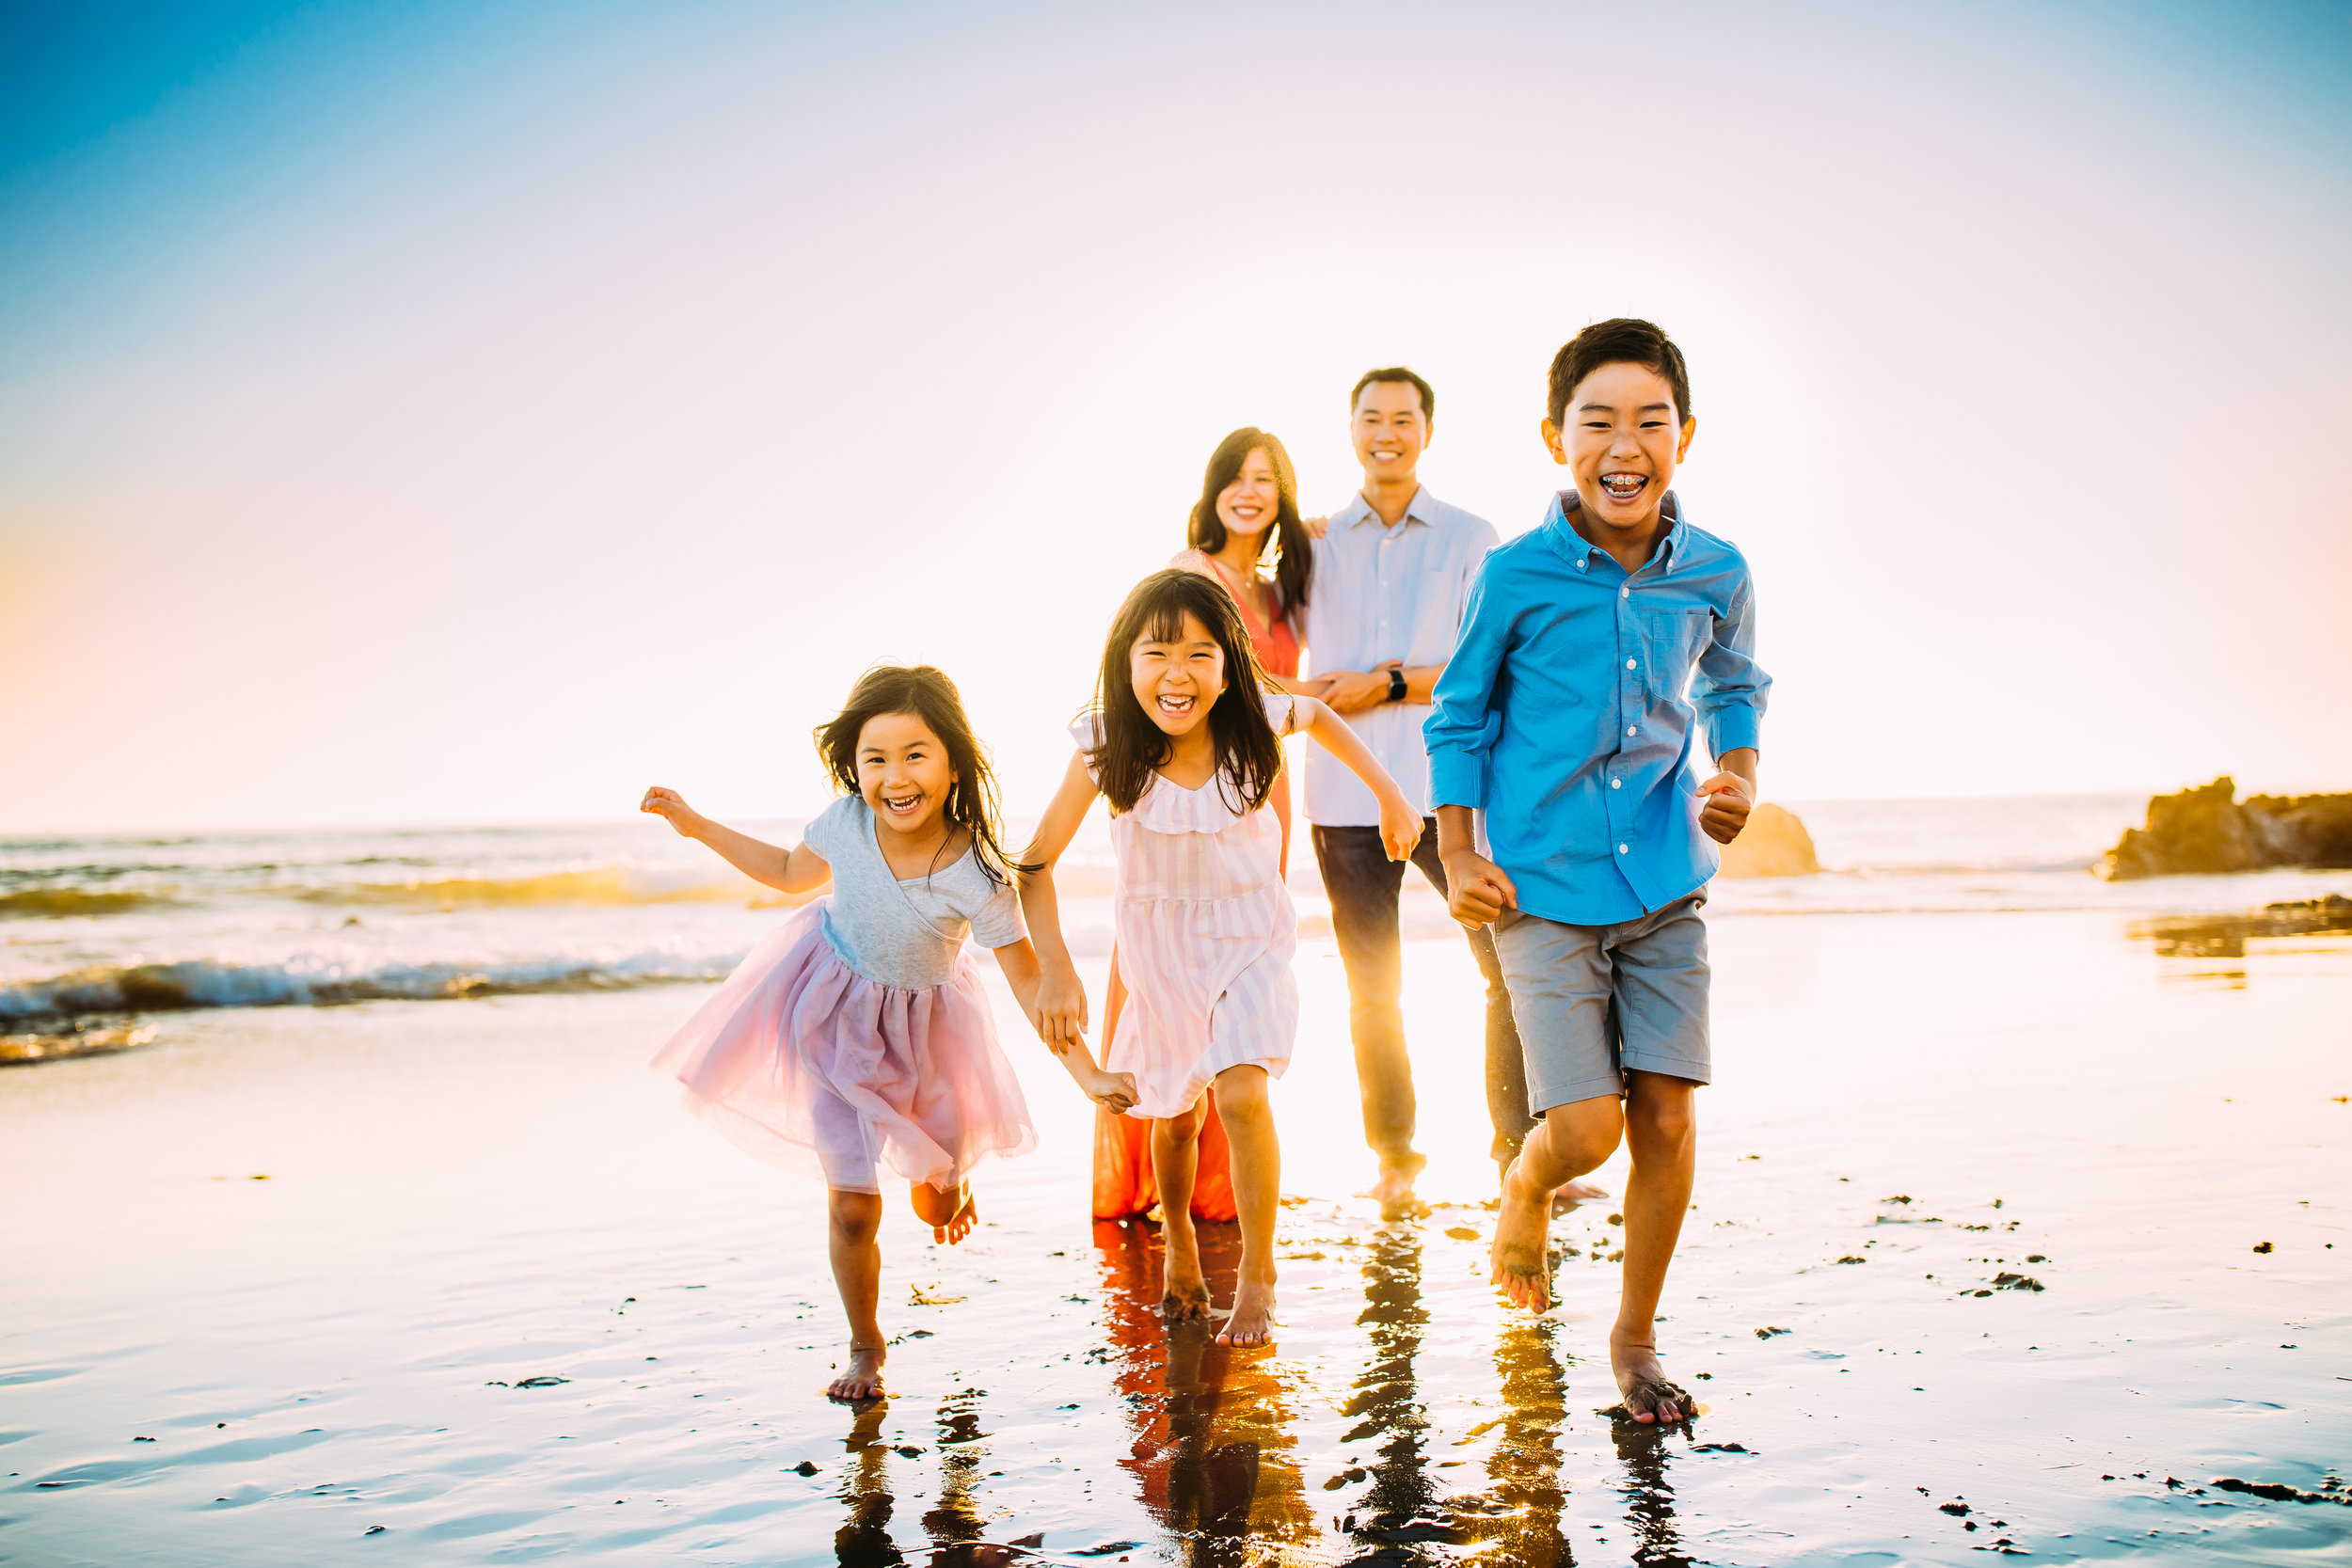 outdoor family photo session at Newport Beach, Orange County, CA